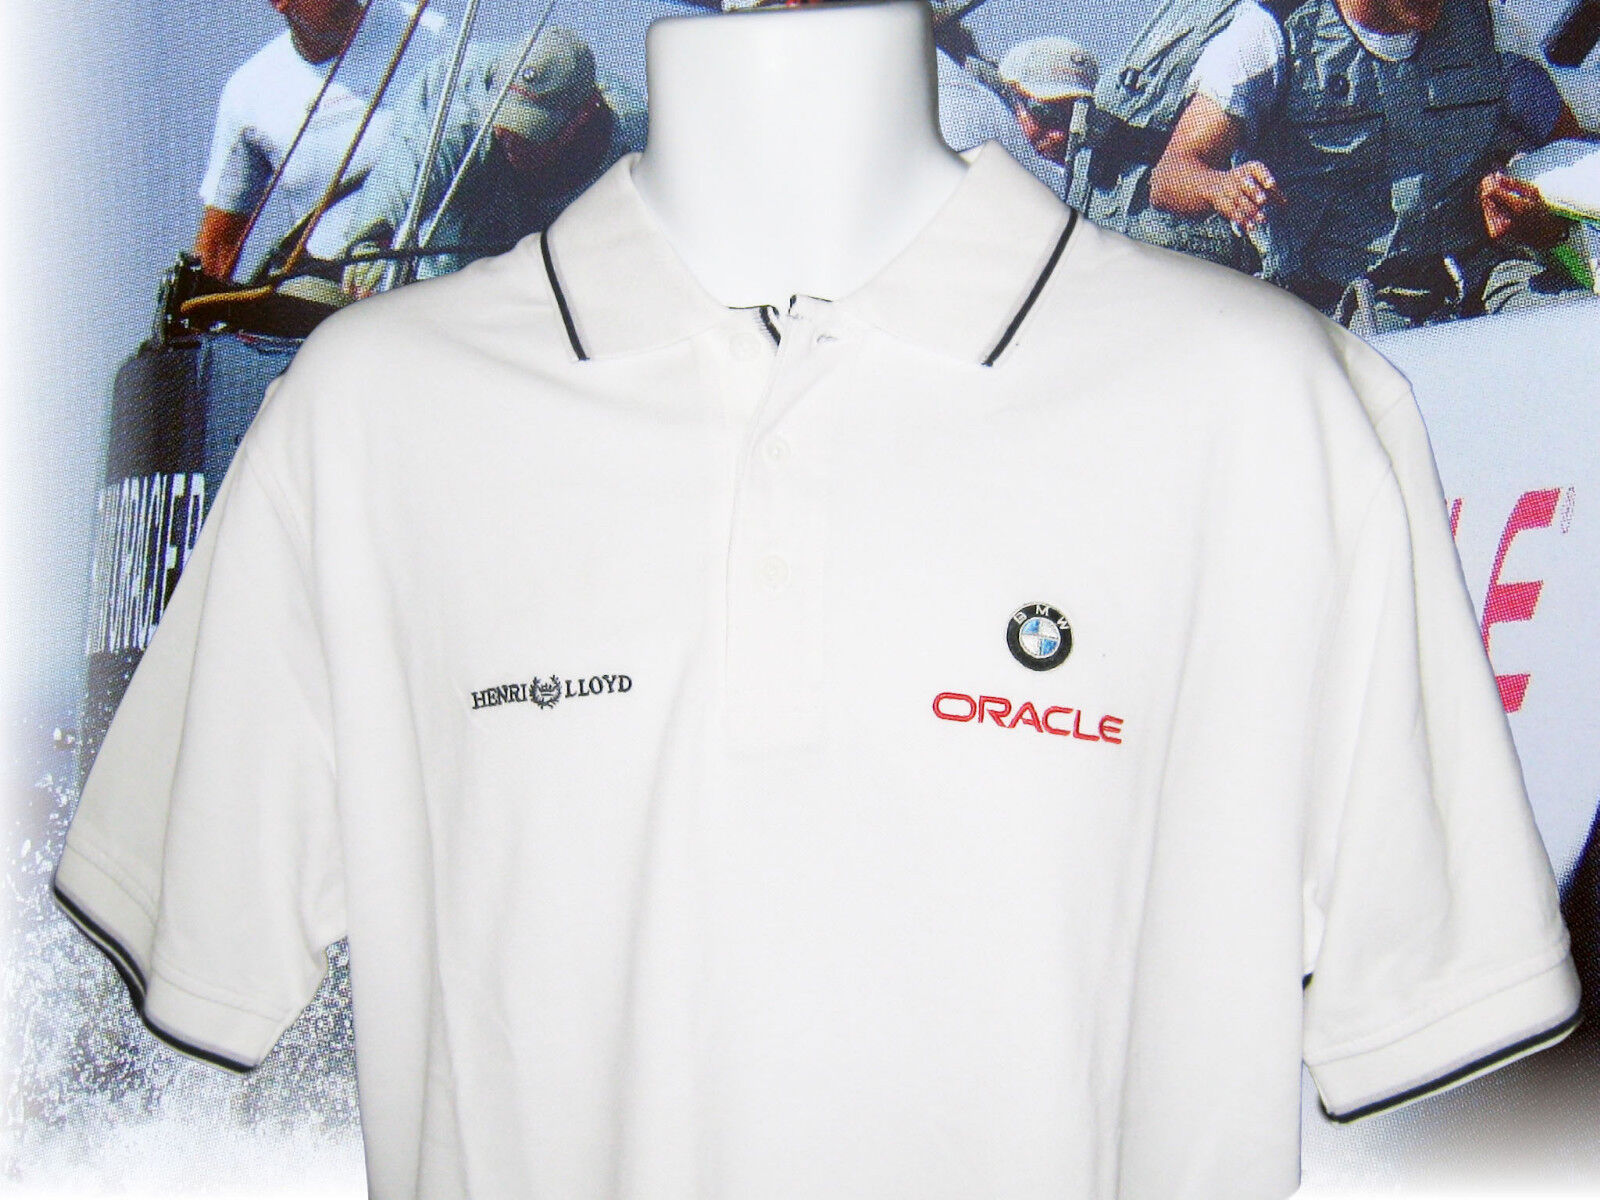 NEW VINTAGE Henri LLOYD POLO SHIRT BMW ORACLE Americas Cup Polo in Bianco S